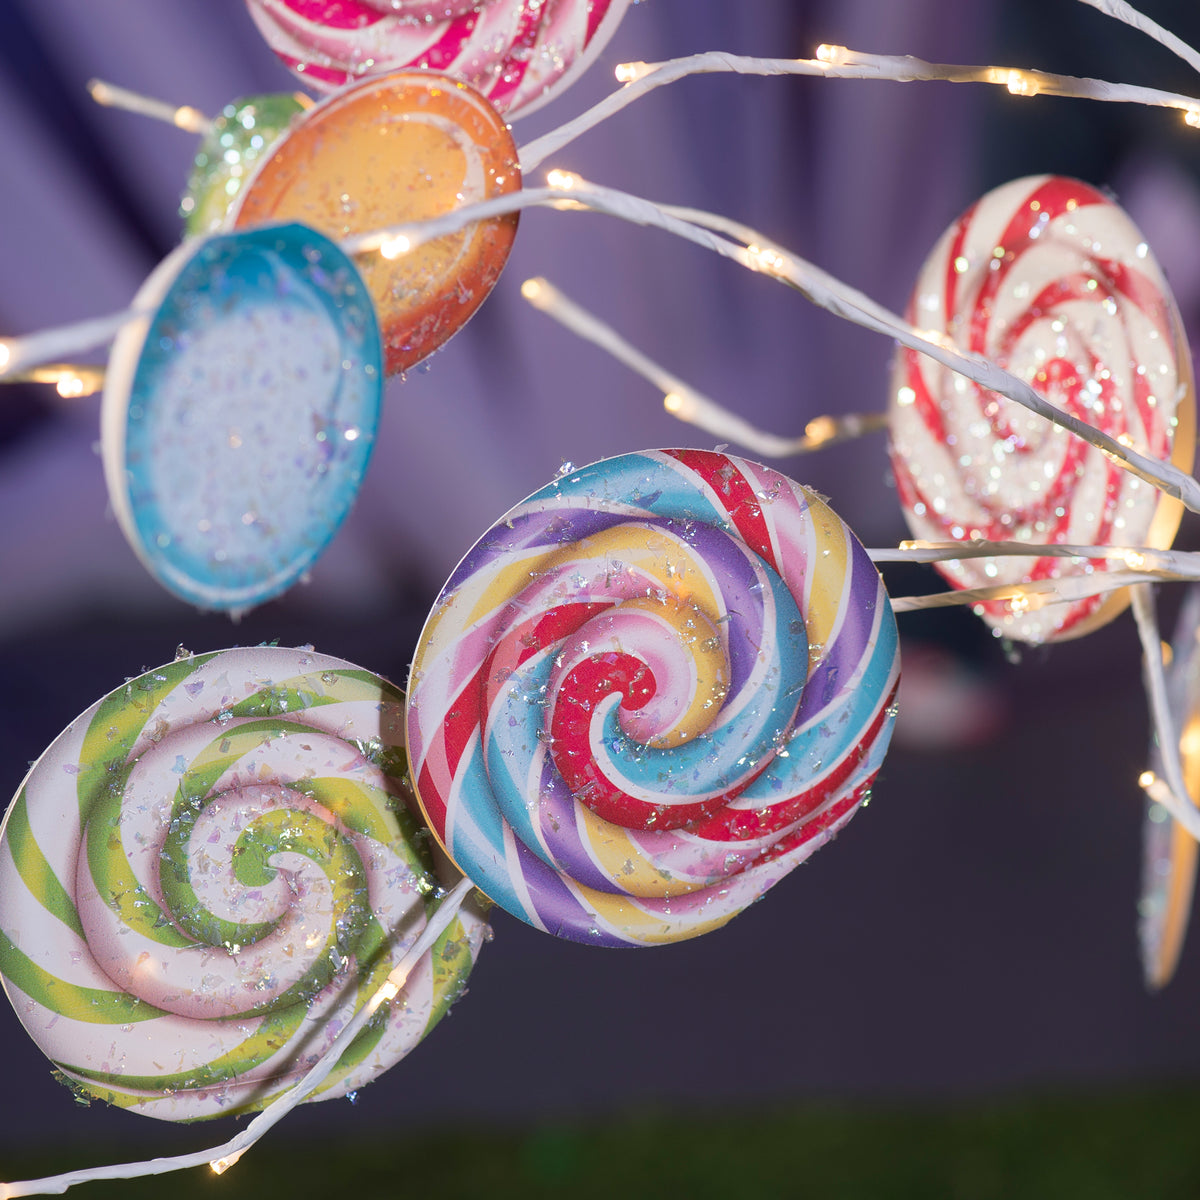 7 ft. Sugar Rush Lollipop Tree